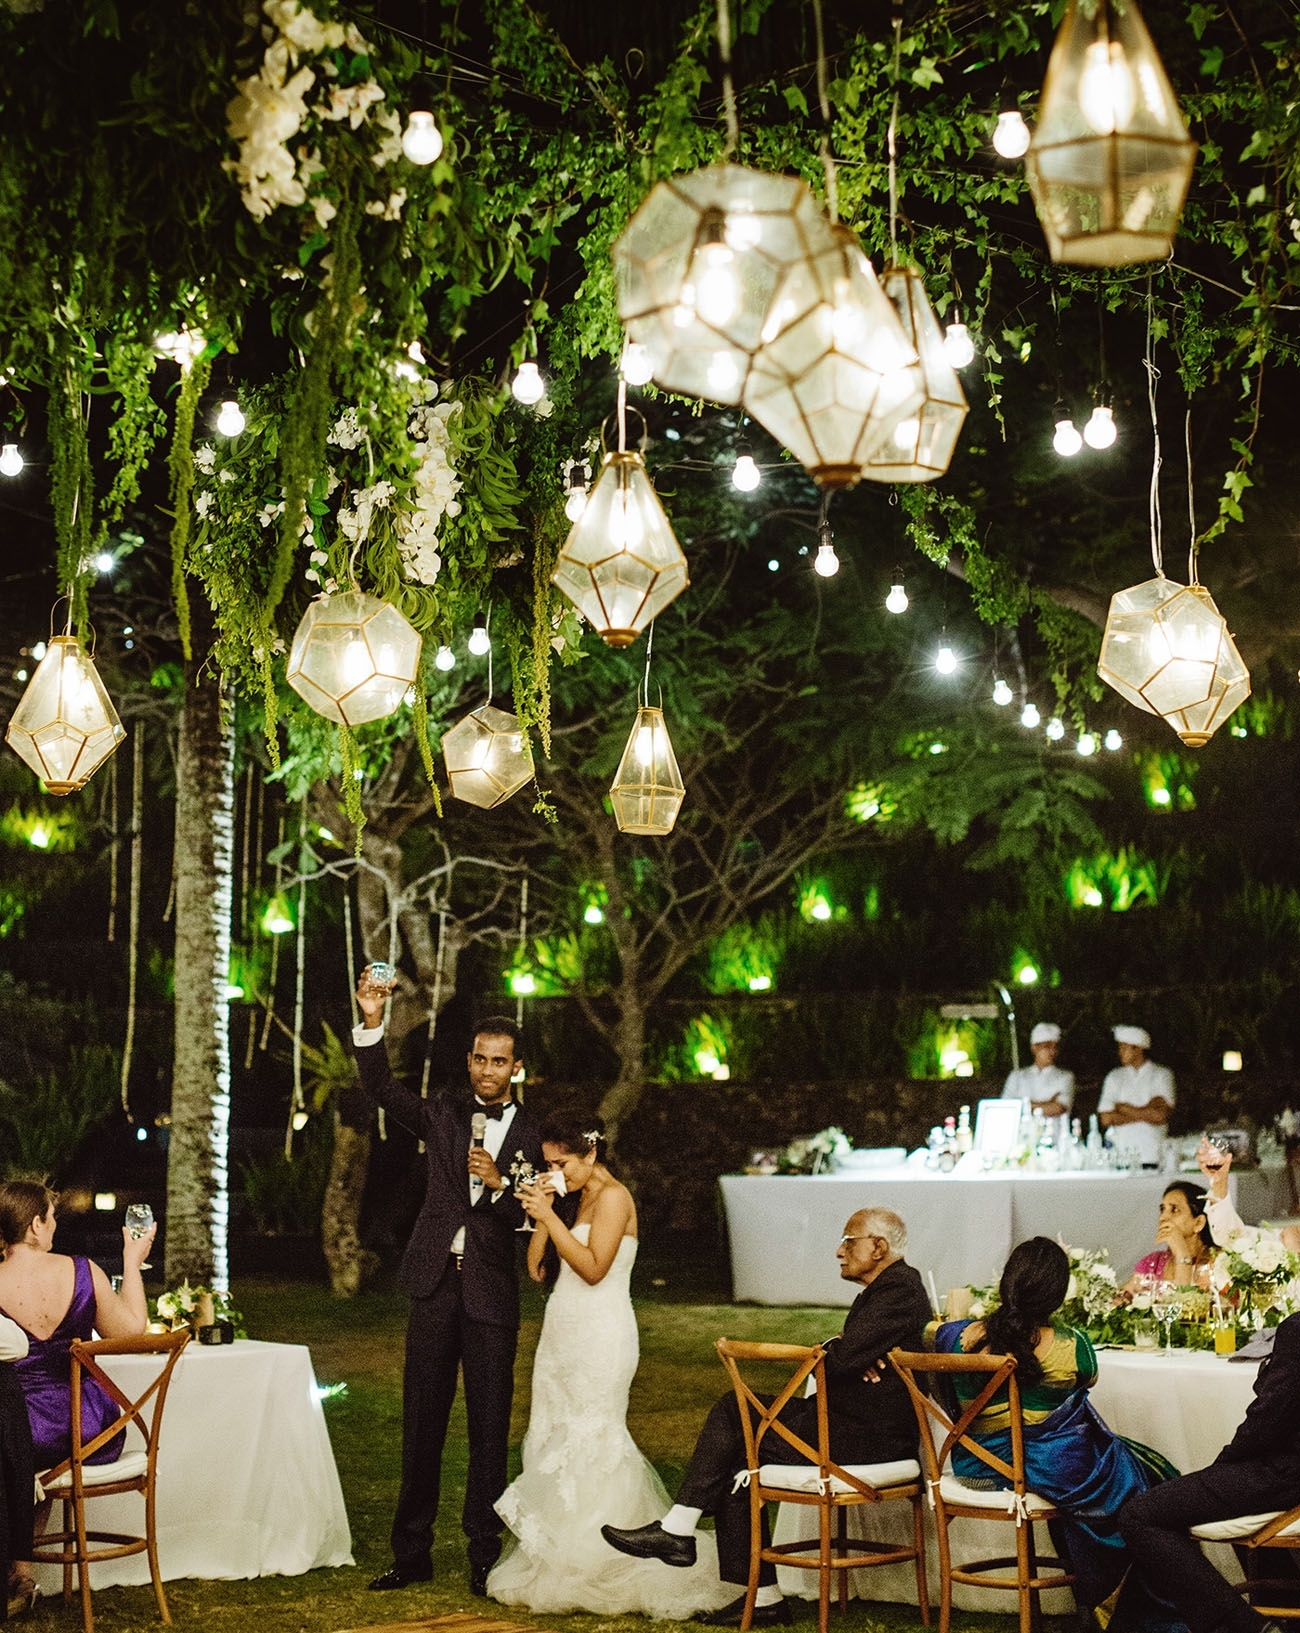 Boho Pins: Top 10 Pins Of The Week – Hanging Decorations | Boho Inside Outdoor Hanging Lanterns For Wedding (View 3 of 15)